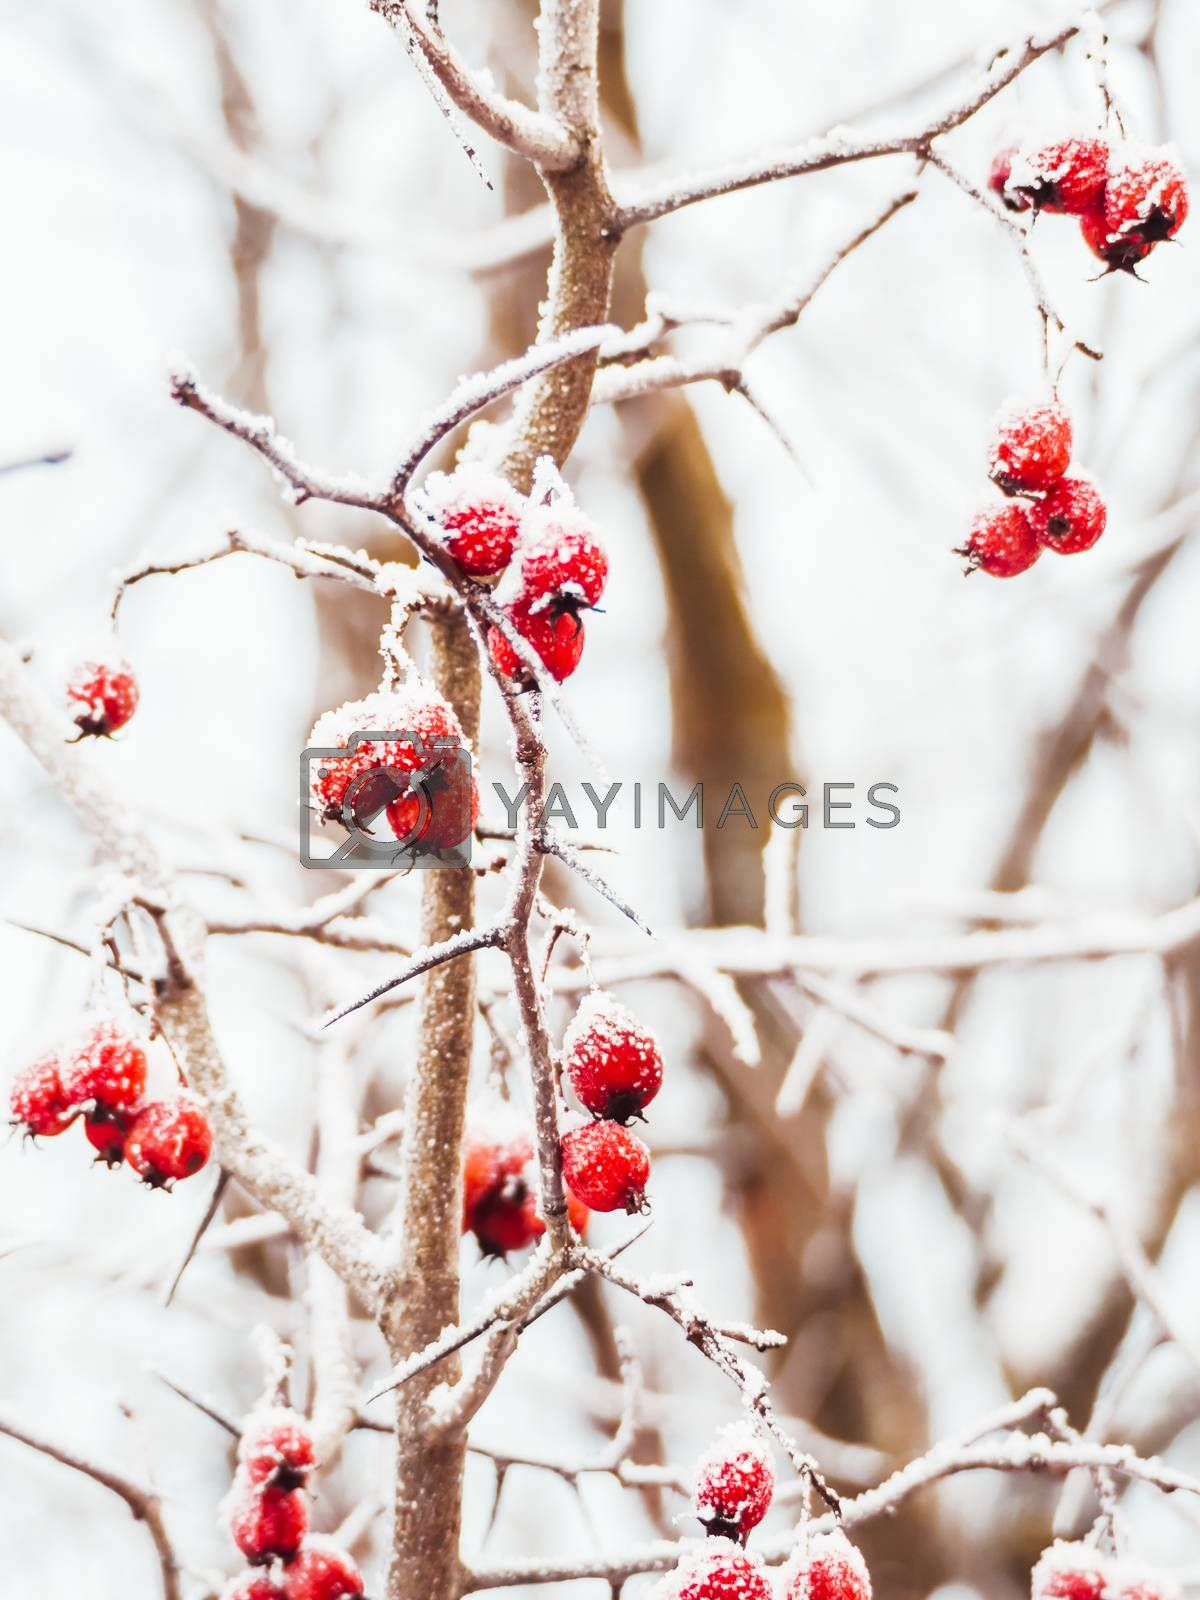 Hawthorn branches with red berries covered with frost. Frozen be by aksenovko